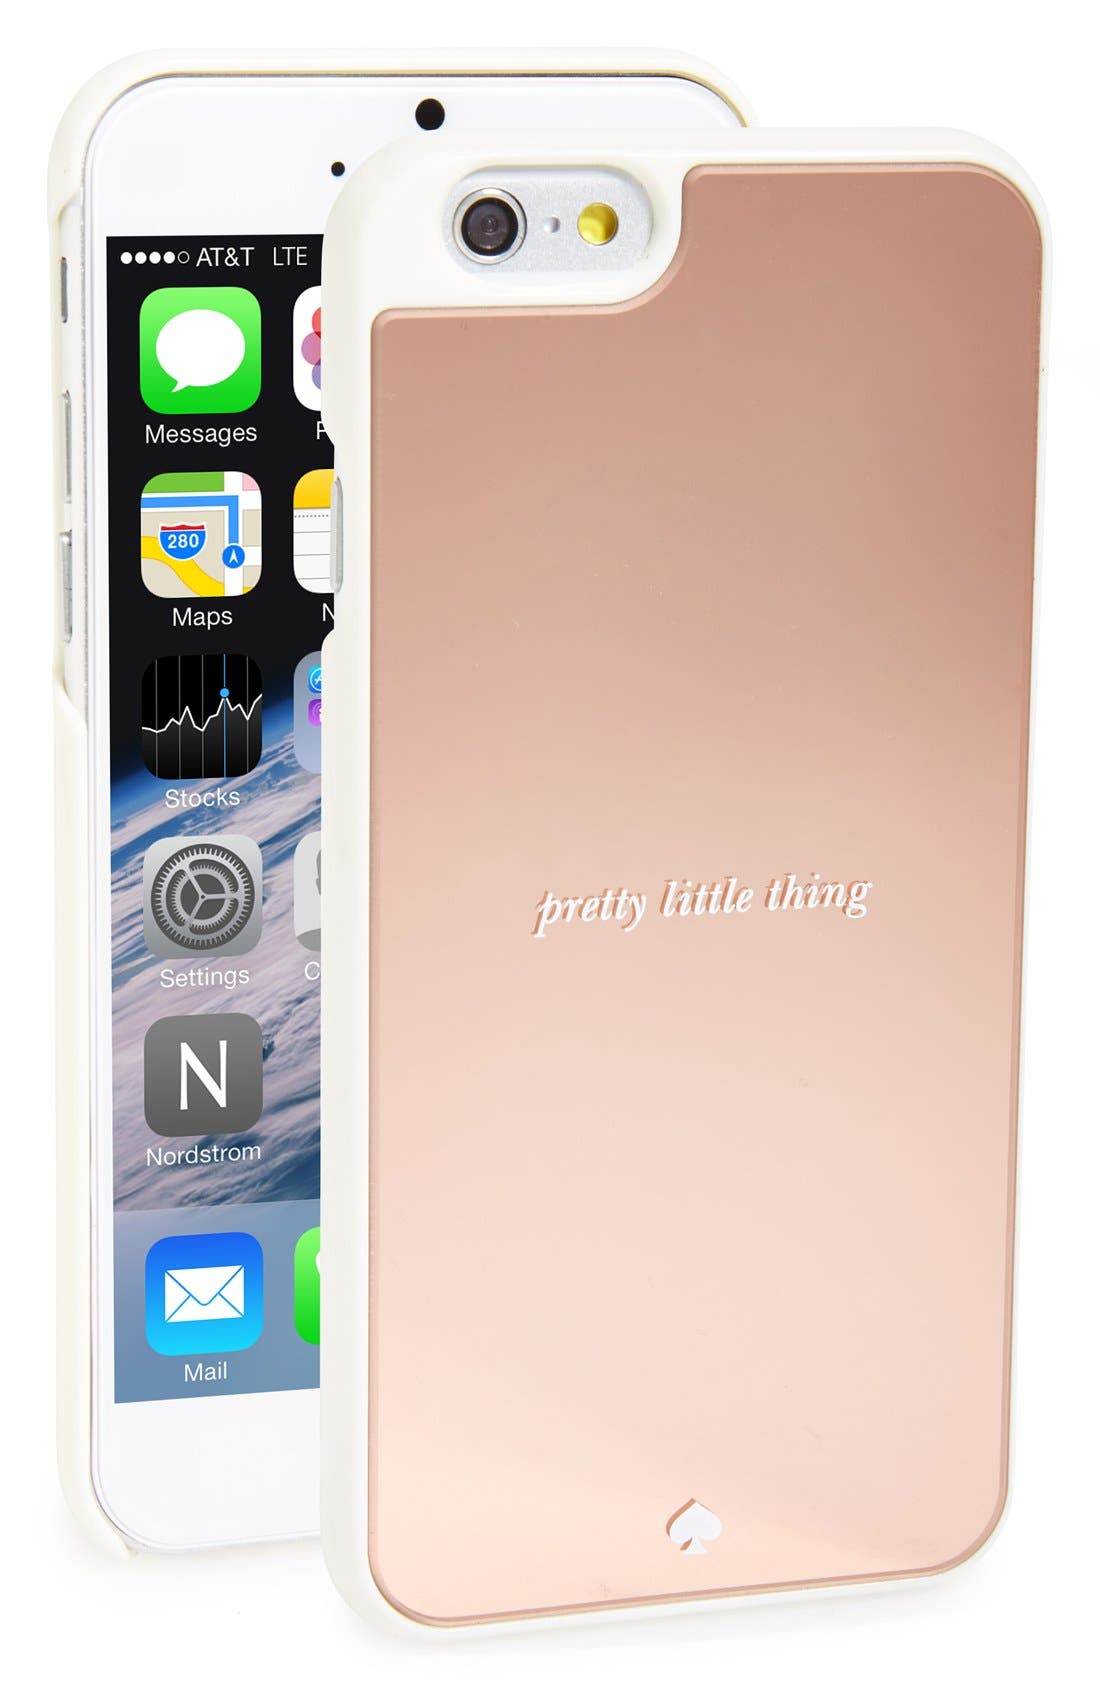 Main Image - kate spade new york 'pretty little thing' iPhone 6 & 6s case